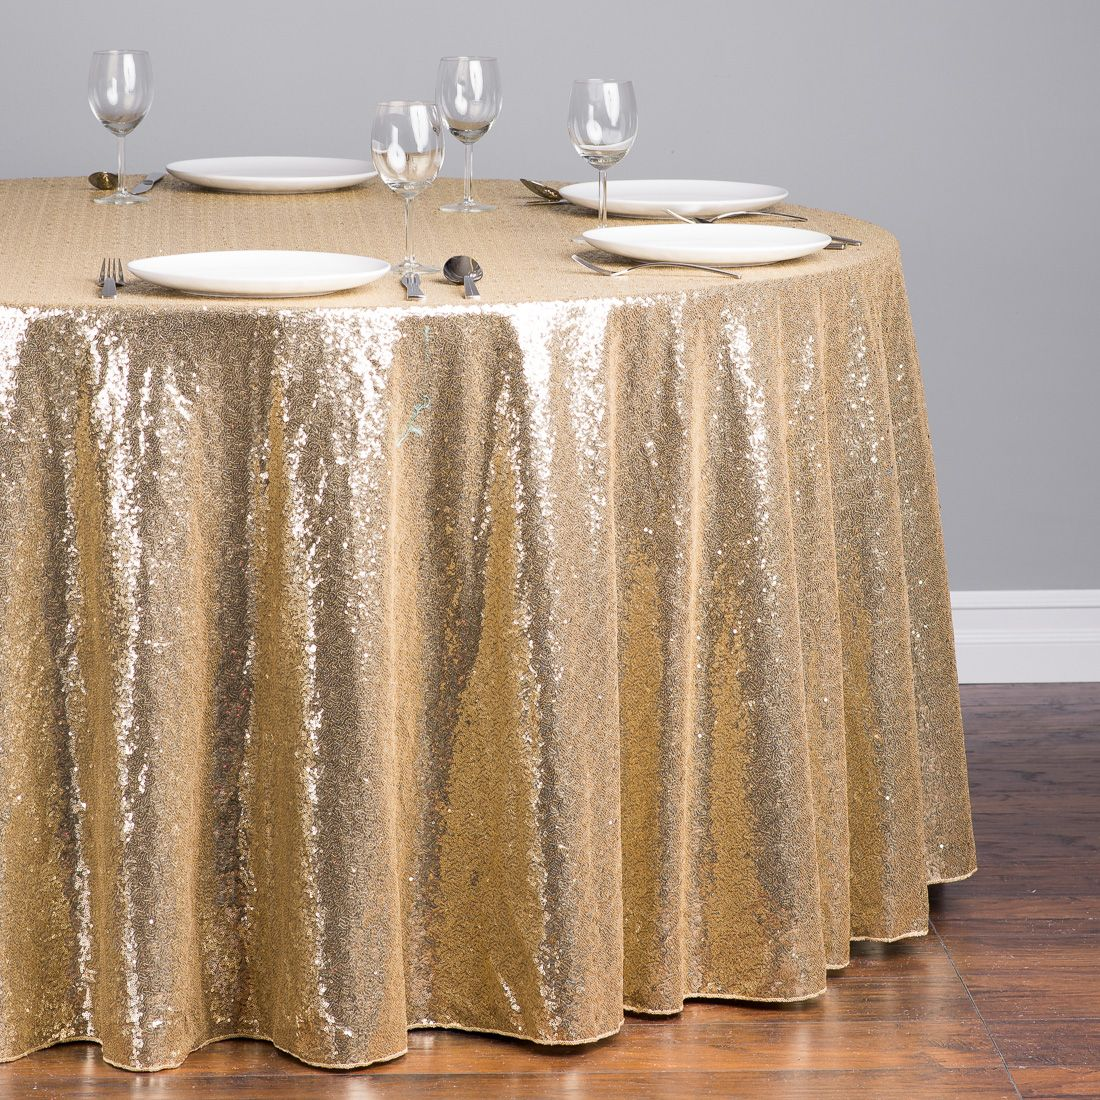 Round Sequin Tablecloth Gold Sweetheart Table W Stripped Runner